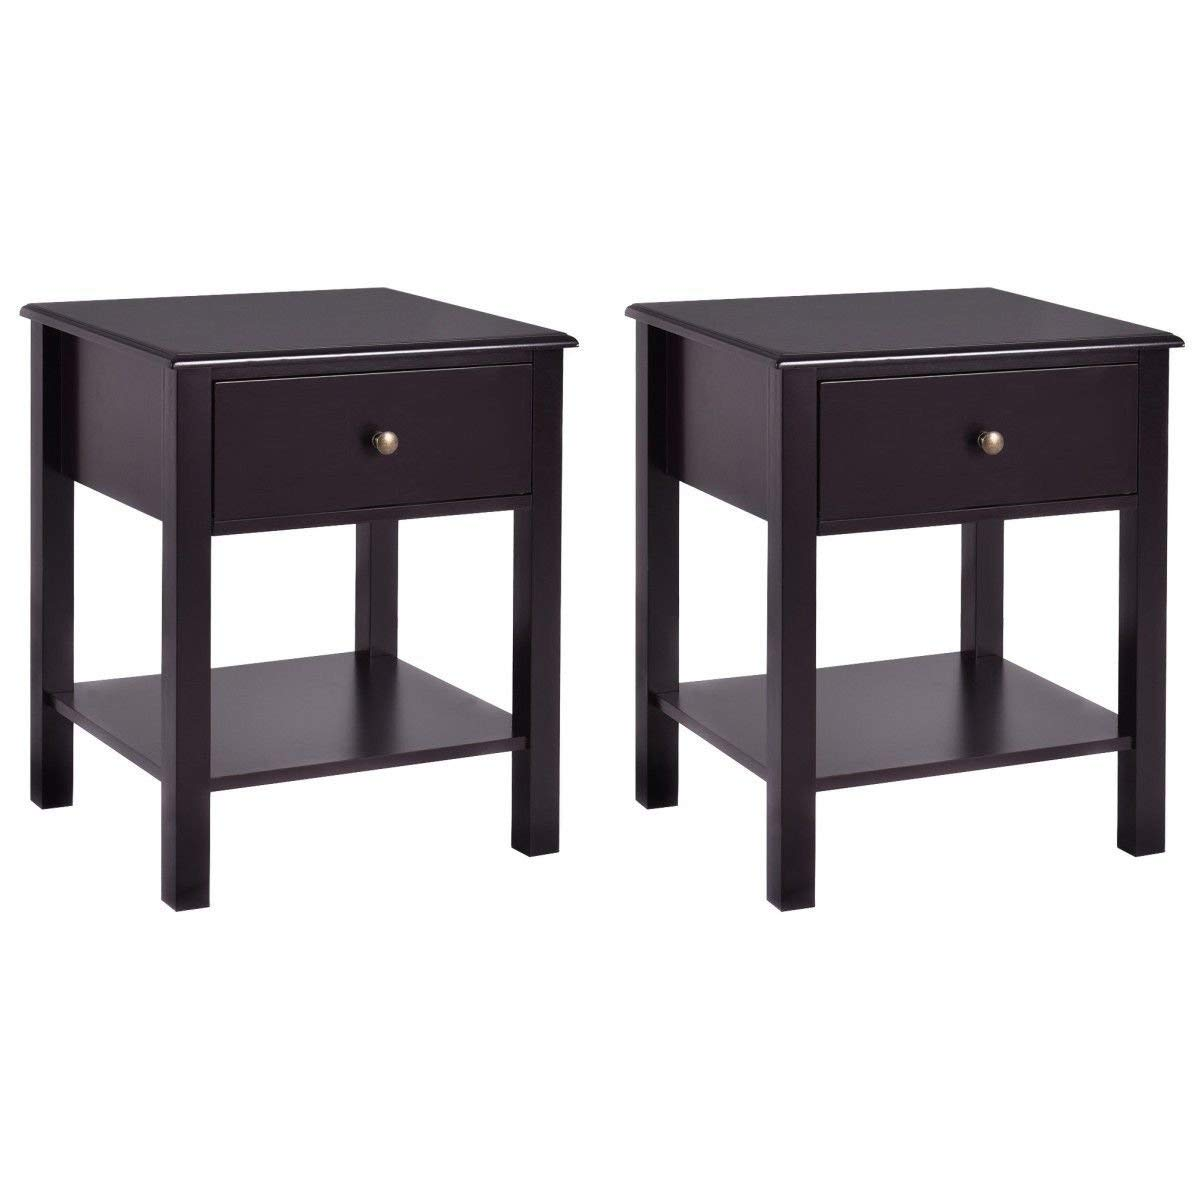 casart end table wood nightstand storage display bedroom furniture tables with drawer shelf beside brown kitchen dining sauder good baby kmart ese coffee small black mirror side